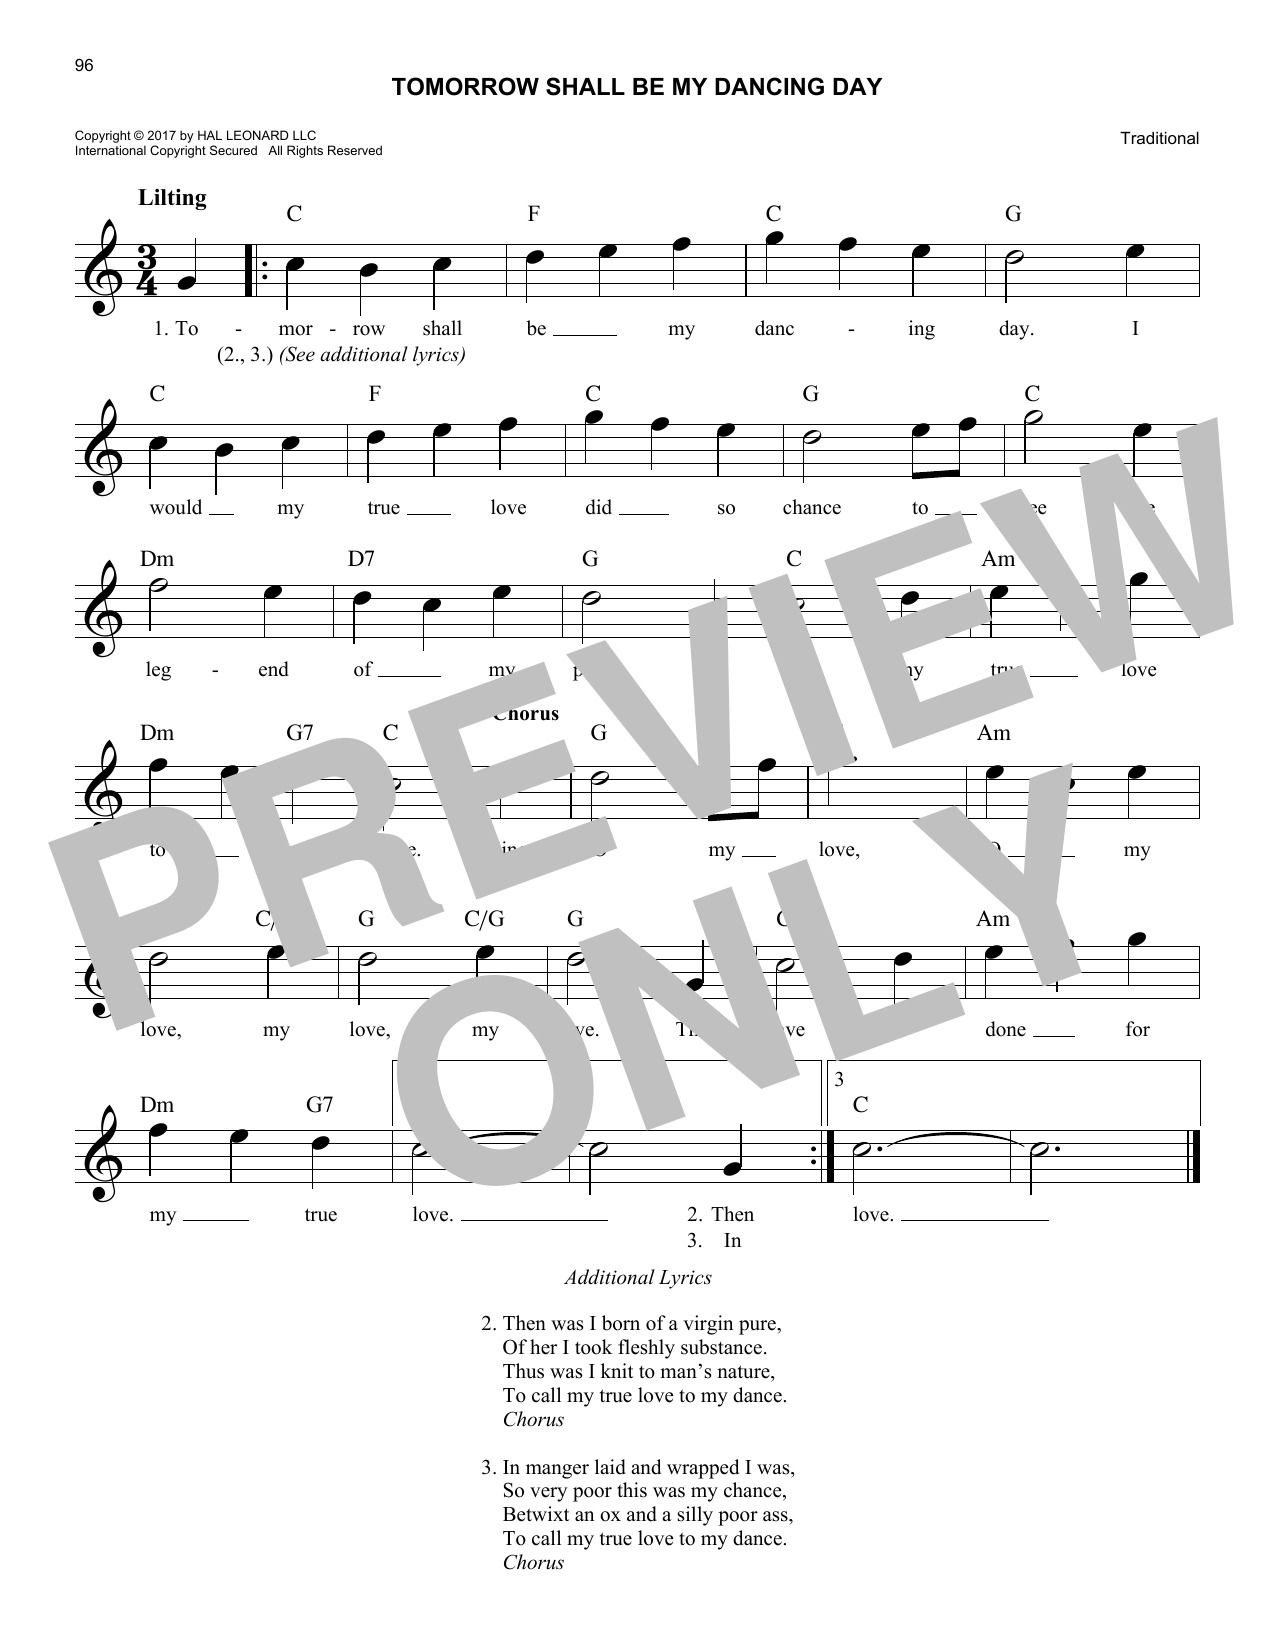 Traditional Tomorrow Shall Be My Dancing Day sheet music notes and chords. Download Printable PDF.